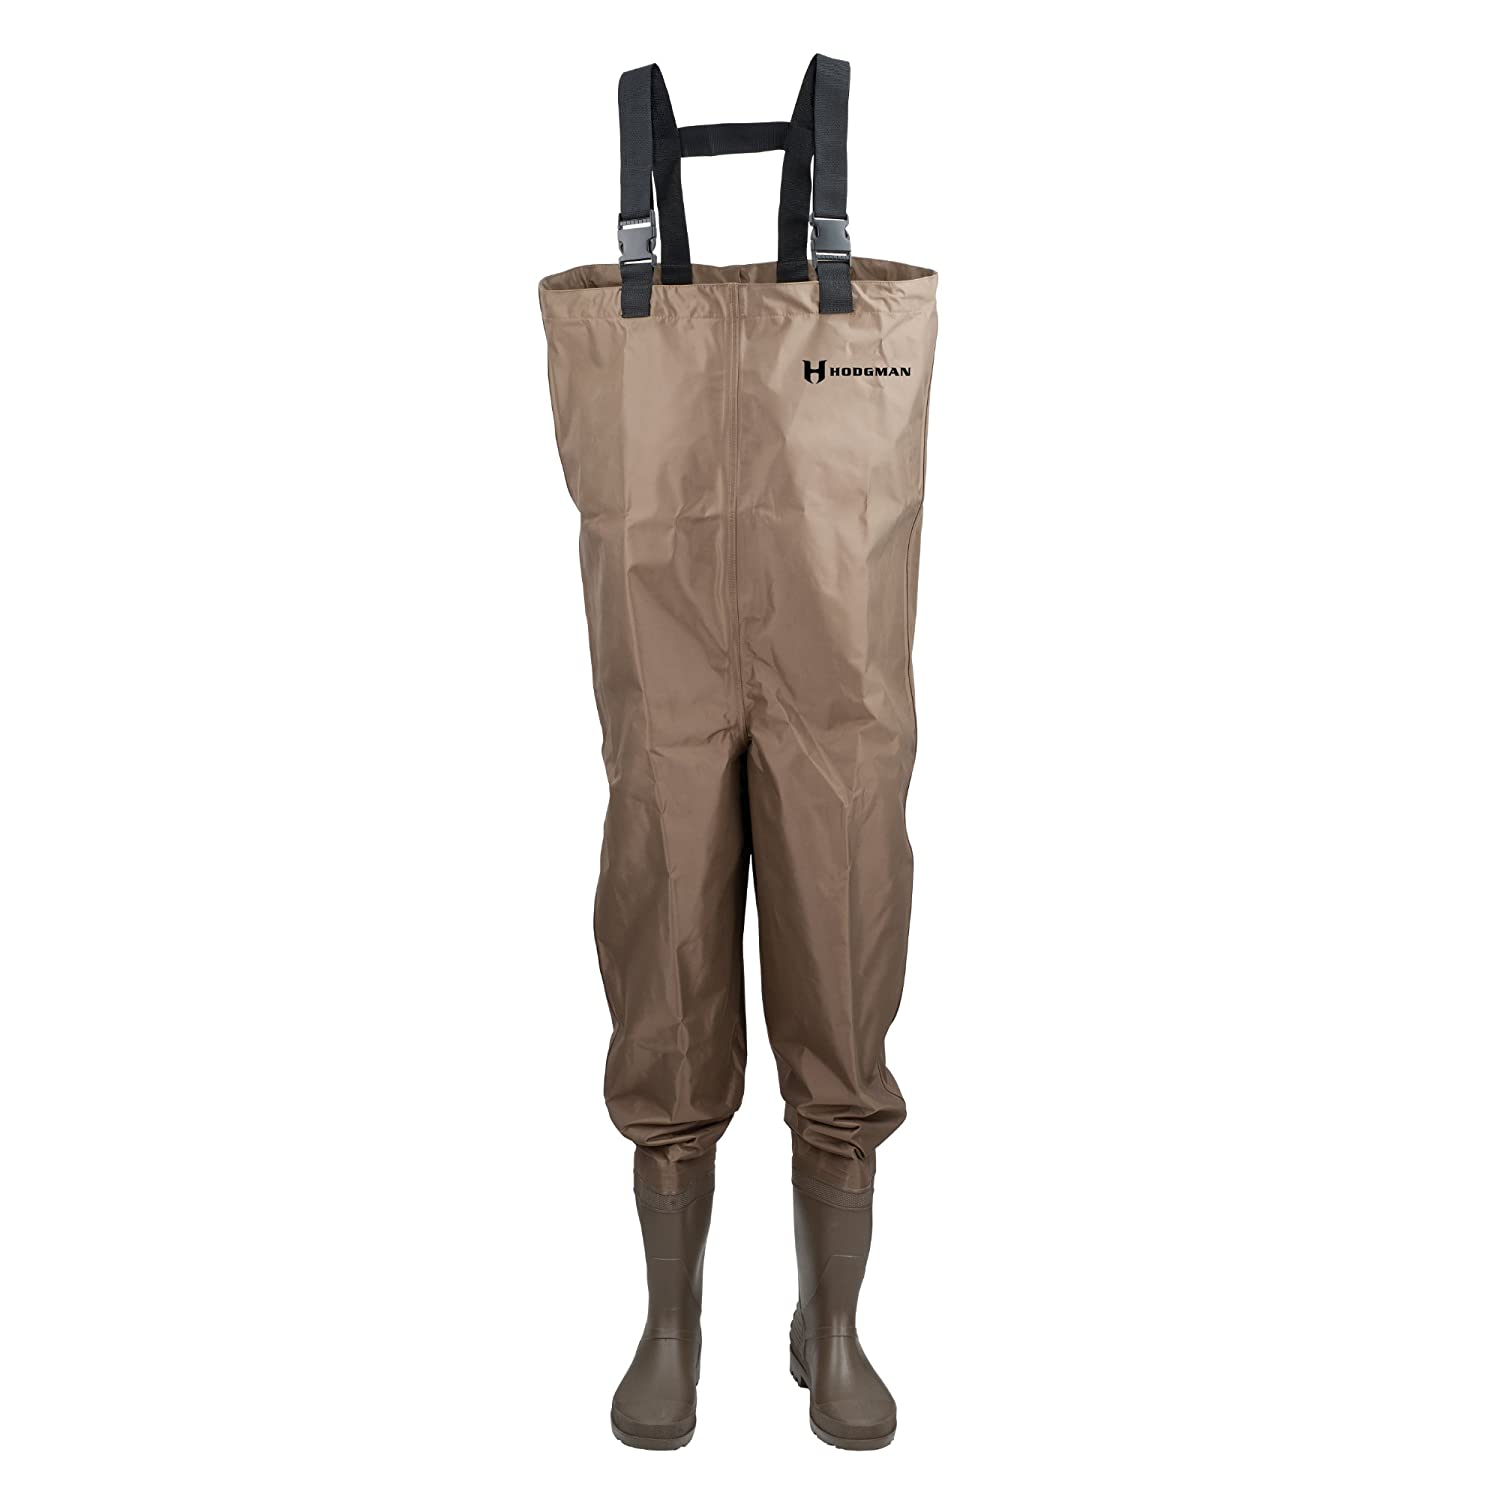 Image gallery water waiters for Fishing waders amazon